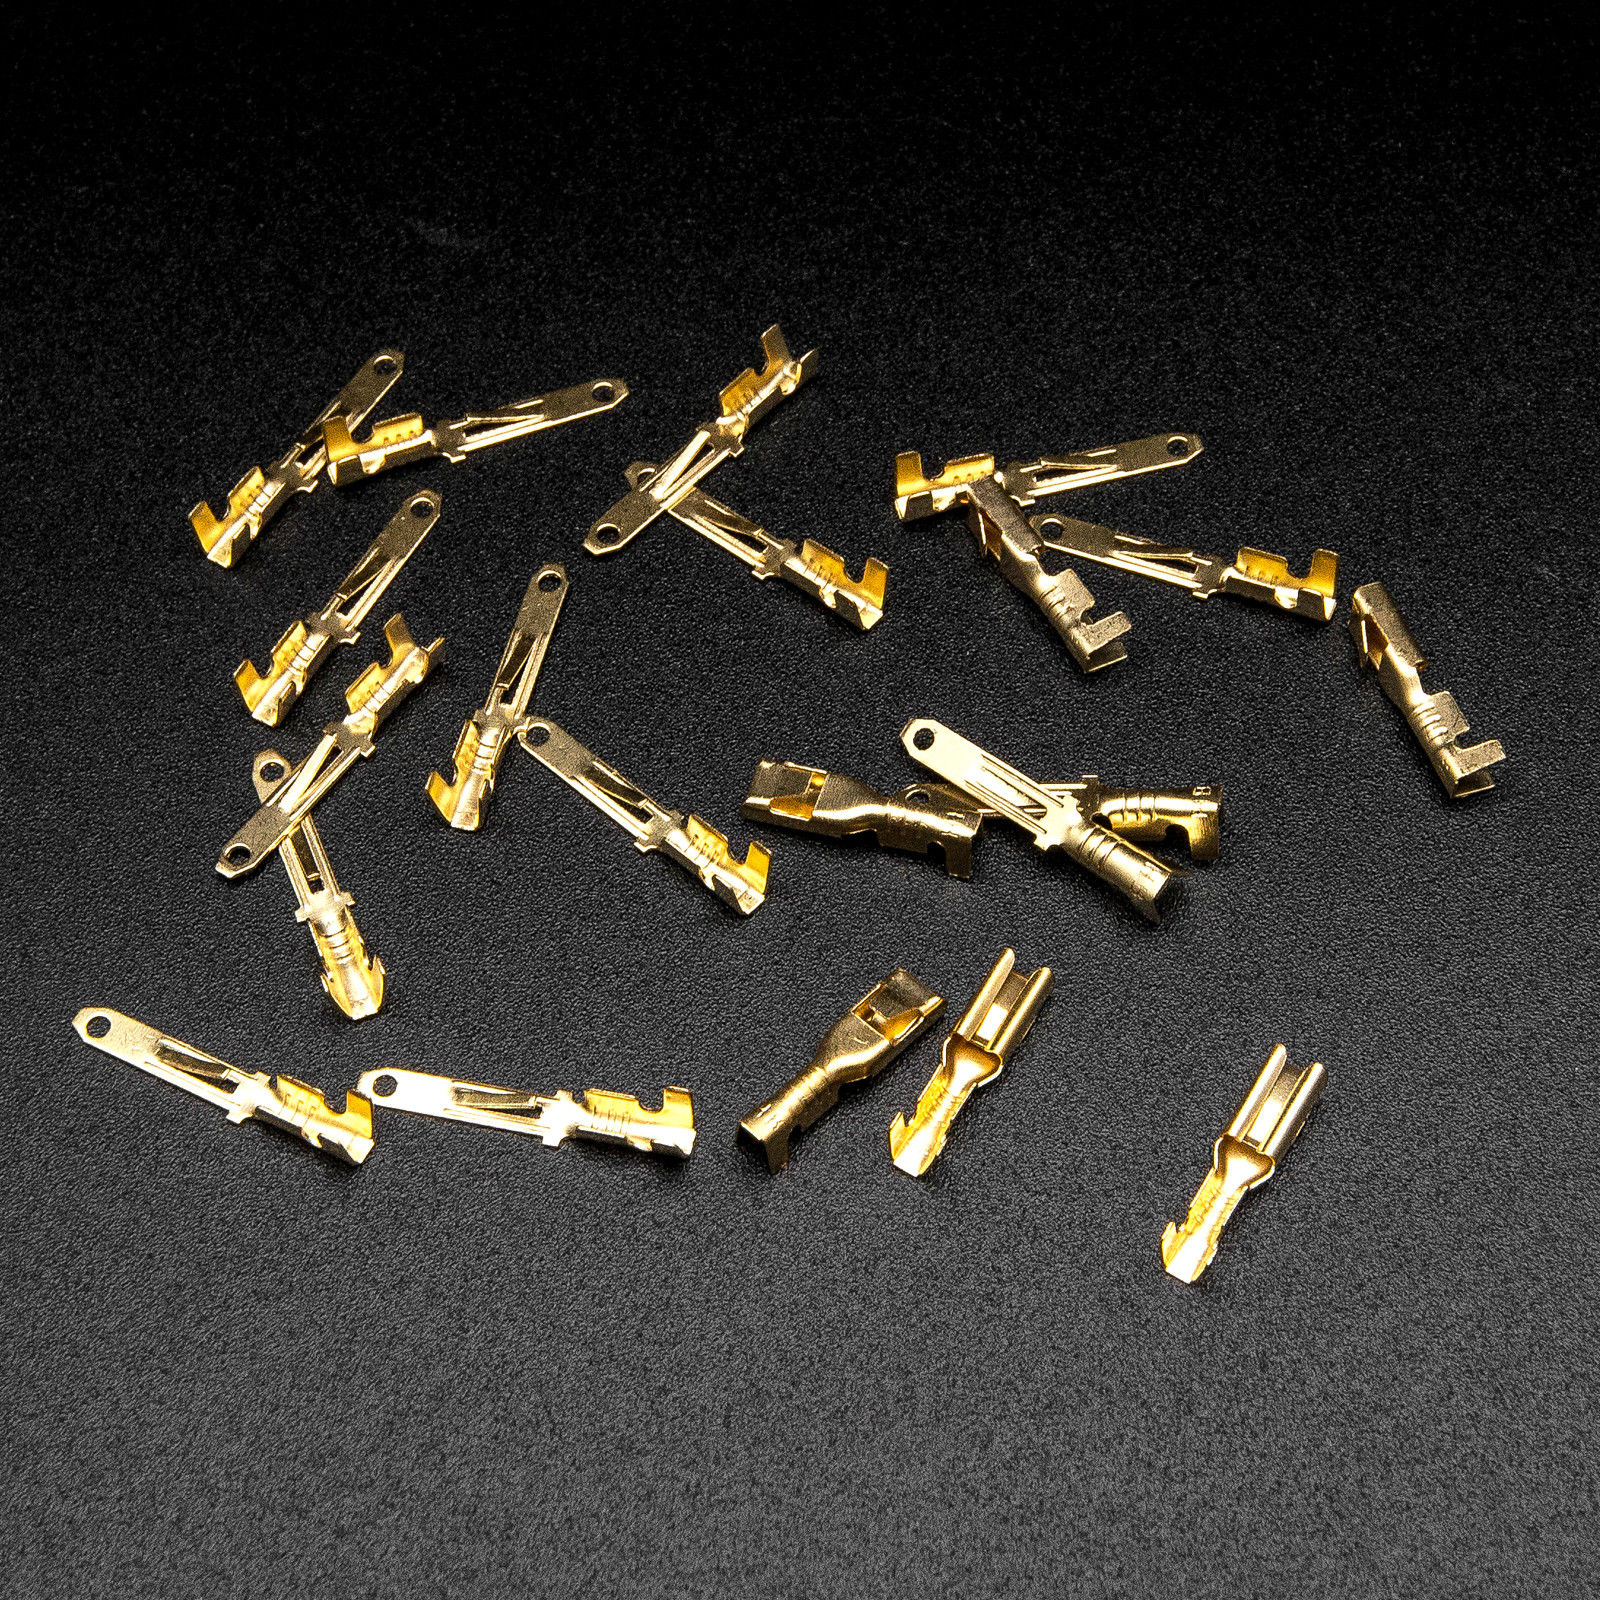 40 Set Motorcycle Car Electrical 2.8mm 2 3 4 6 Pin Wire Auto ...